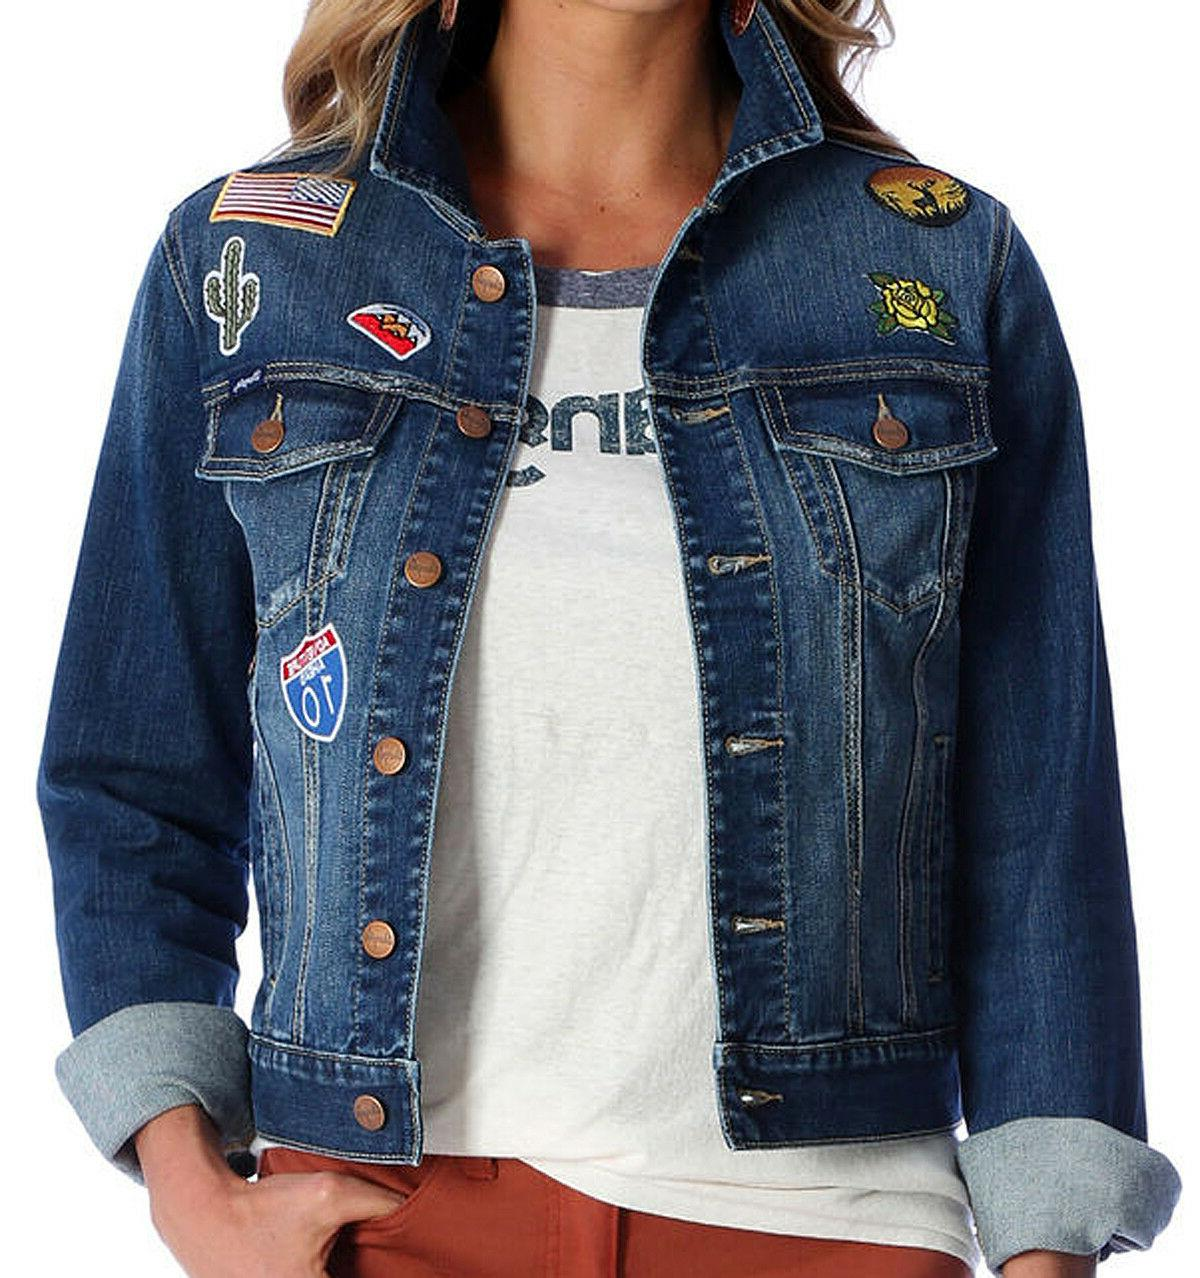 NWT Women's WRANGLER Jean Denim Patch Jacket LWJ300D Medium